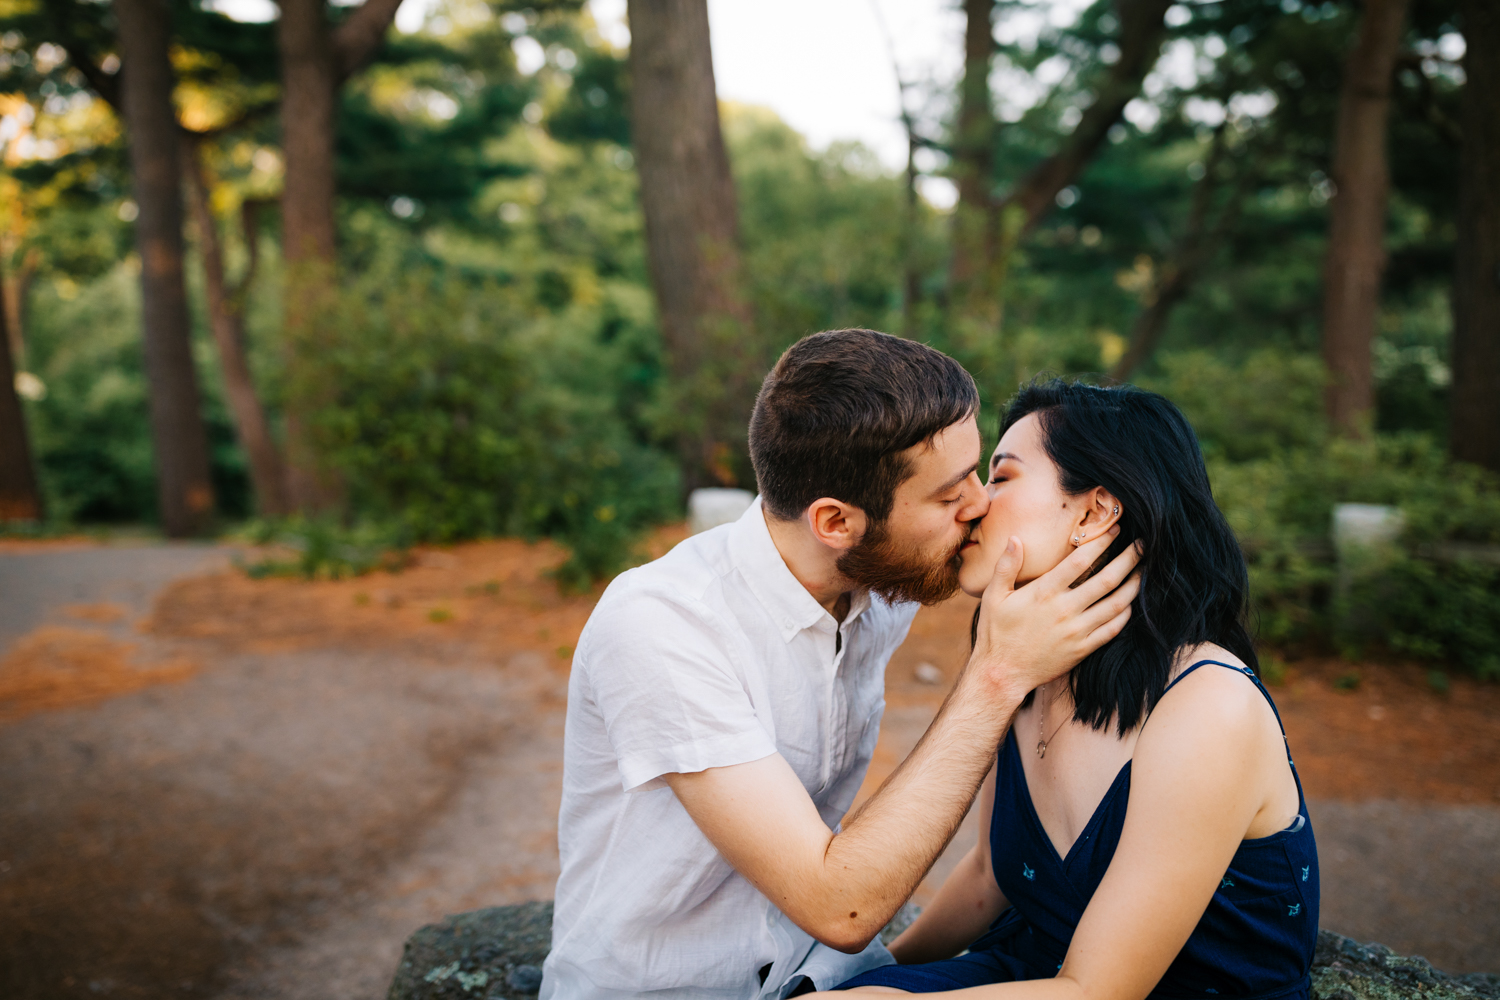 engagement-session-andrea-van-orsouw-photography-harvard-boston-arbold-arboretum-massachusetts-fun-natural-adventurous-photographer.jpg